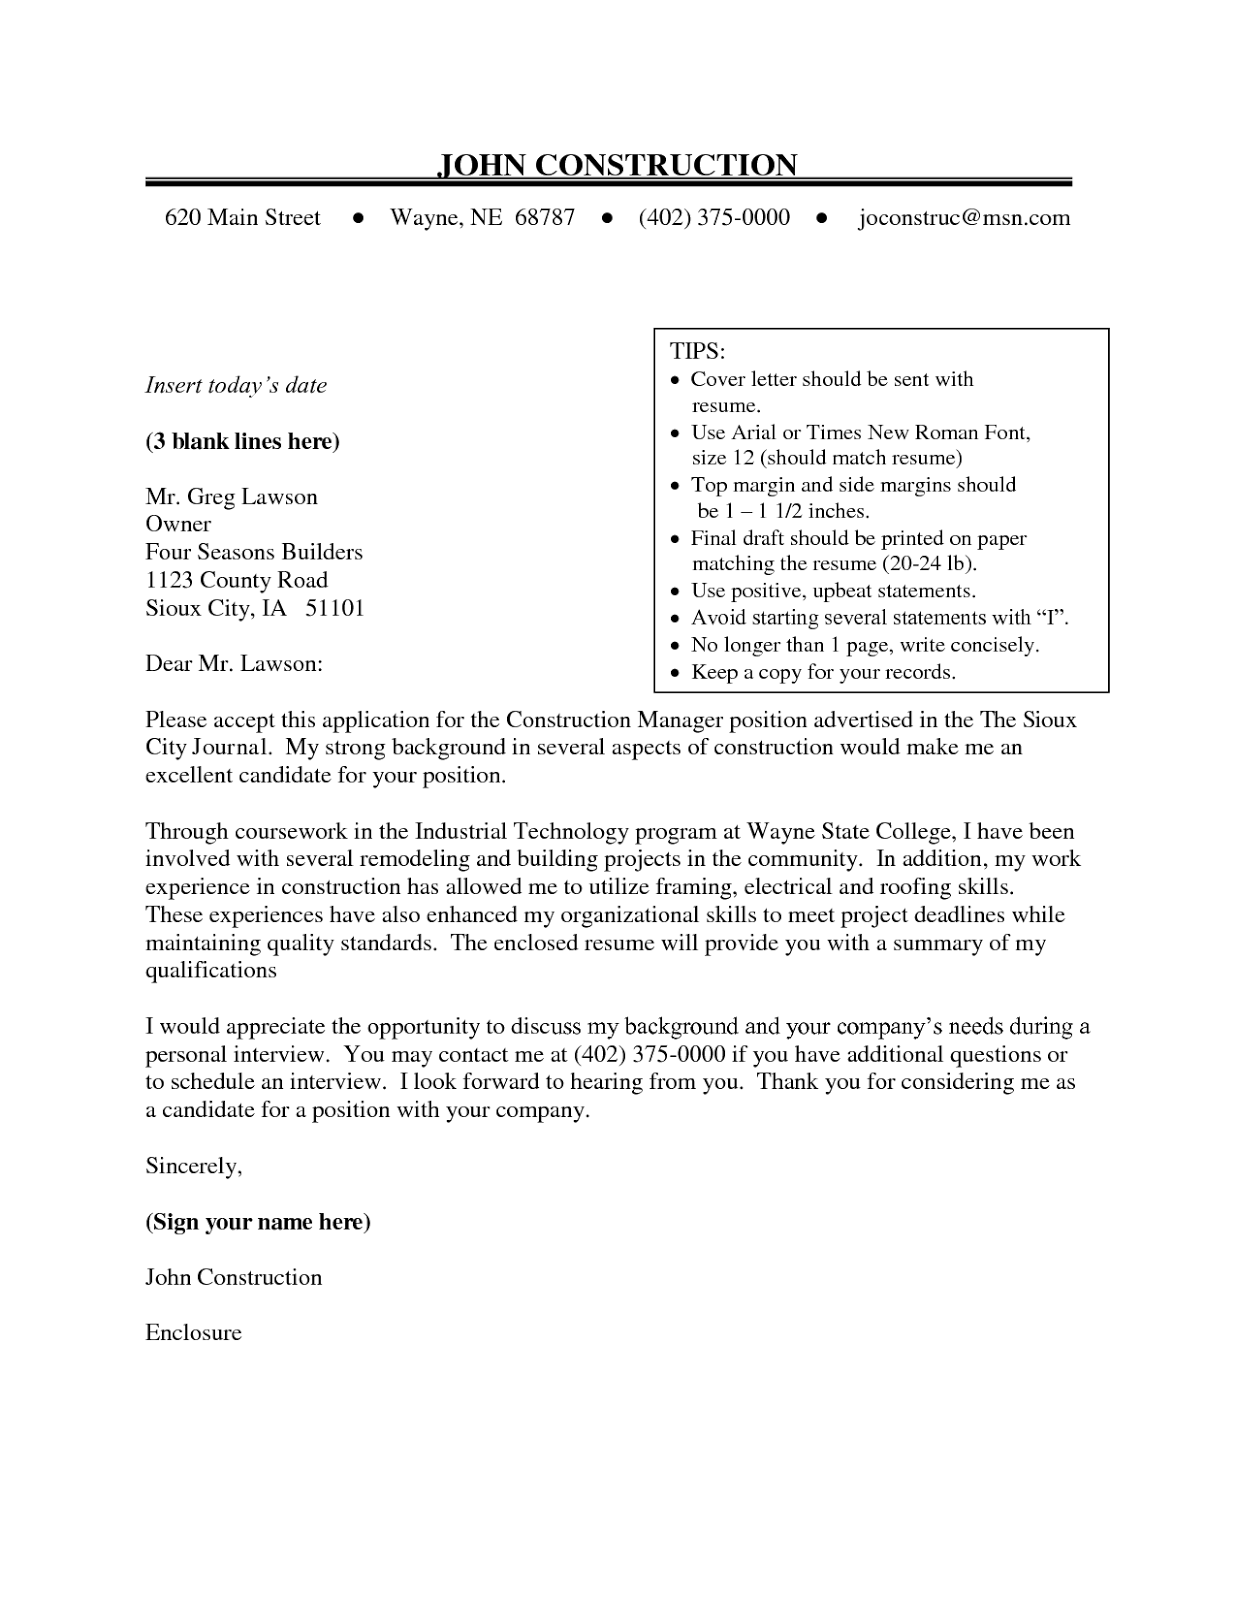 Short Cover Letters Cover Letter Samples For Athletic Trainers Short